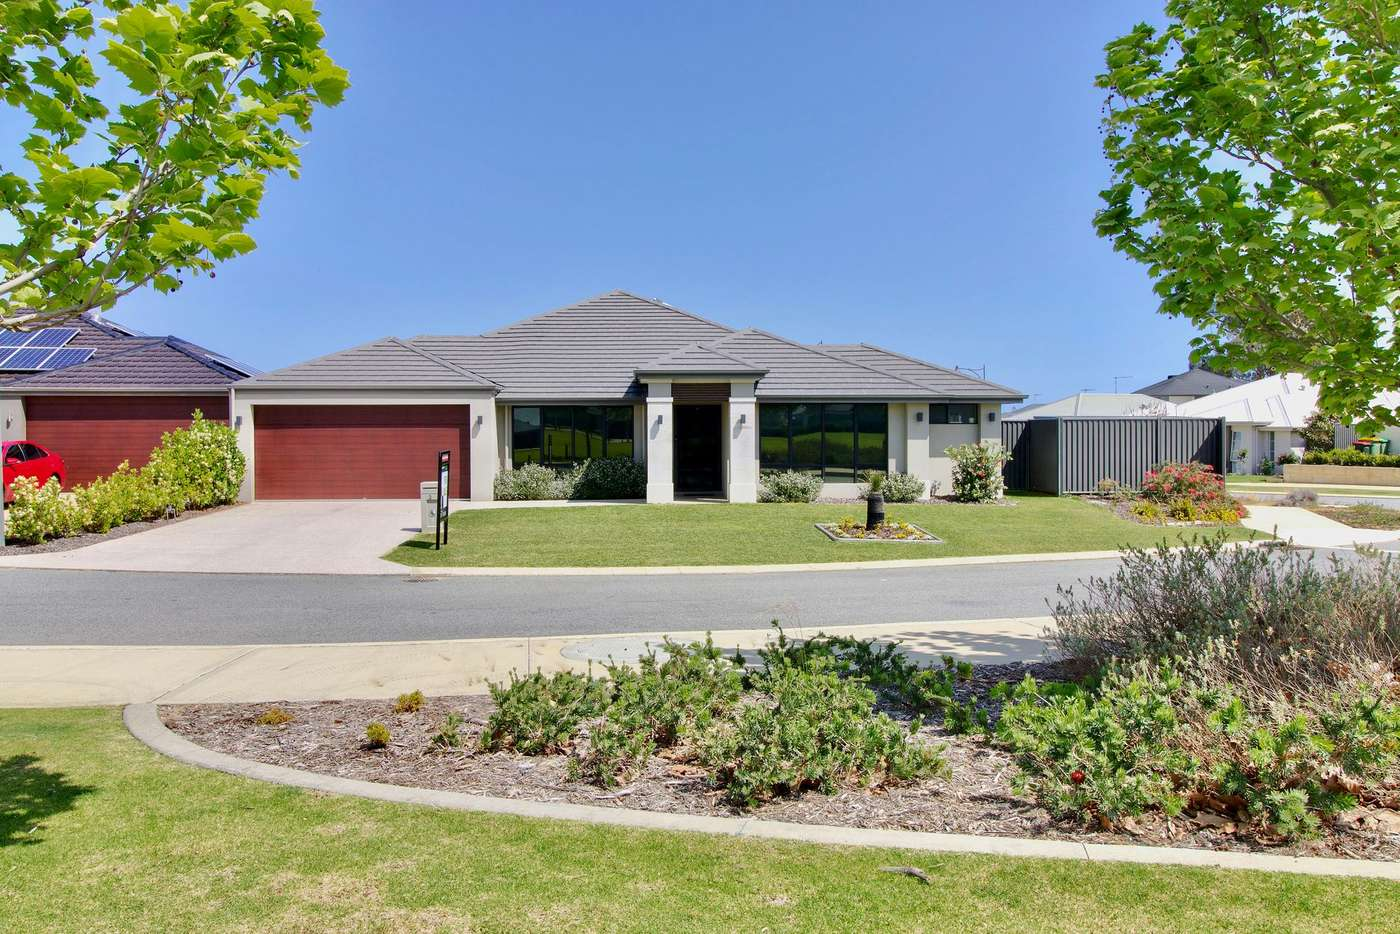 Main view of Homely house listing, 2 Whinhill Loop, Baldivis WA 6171